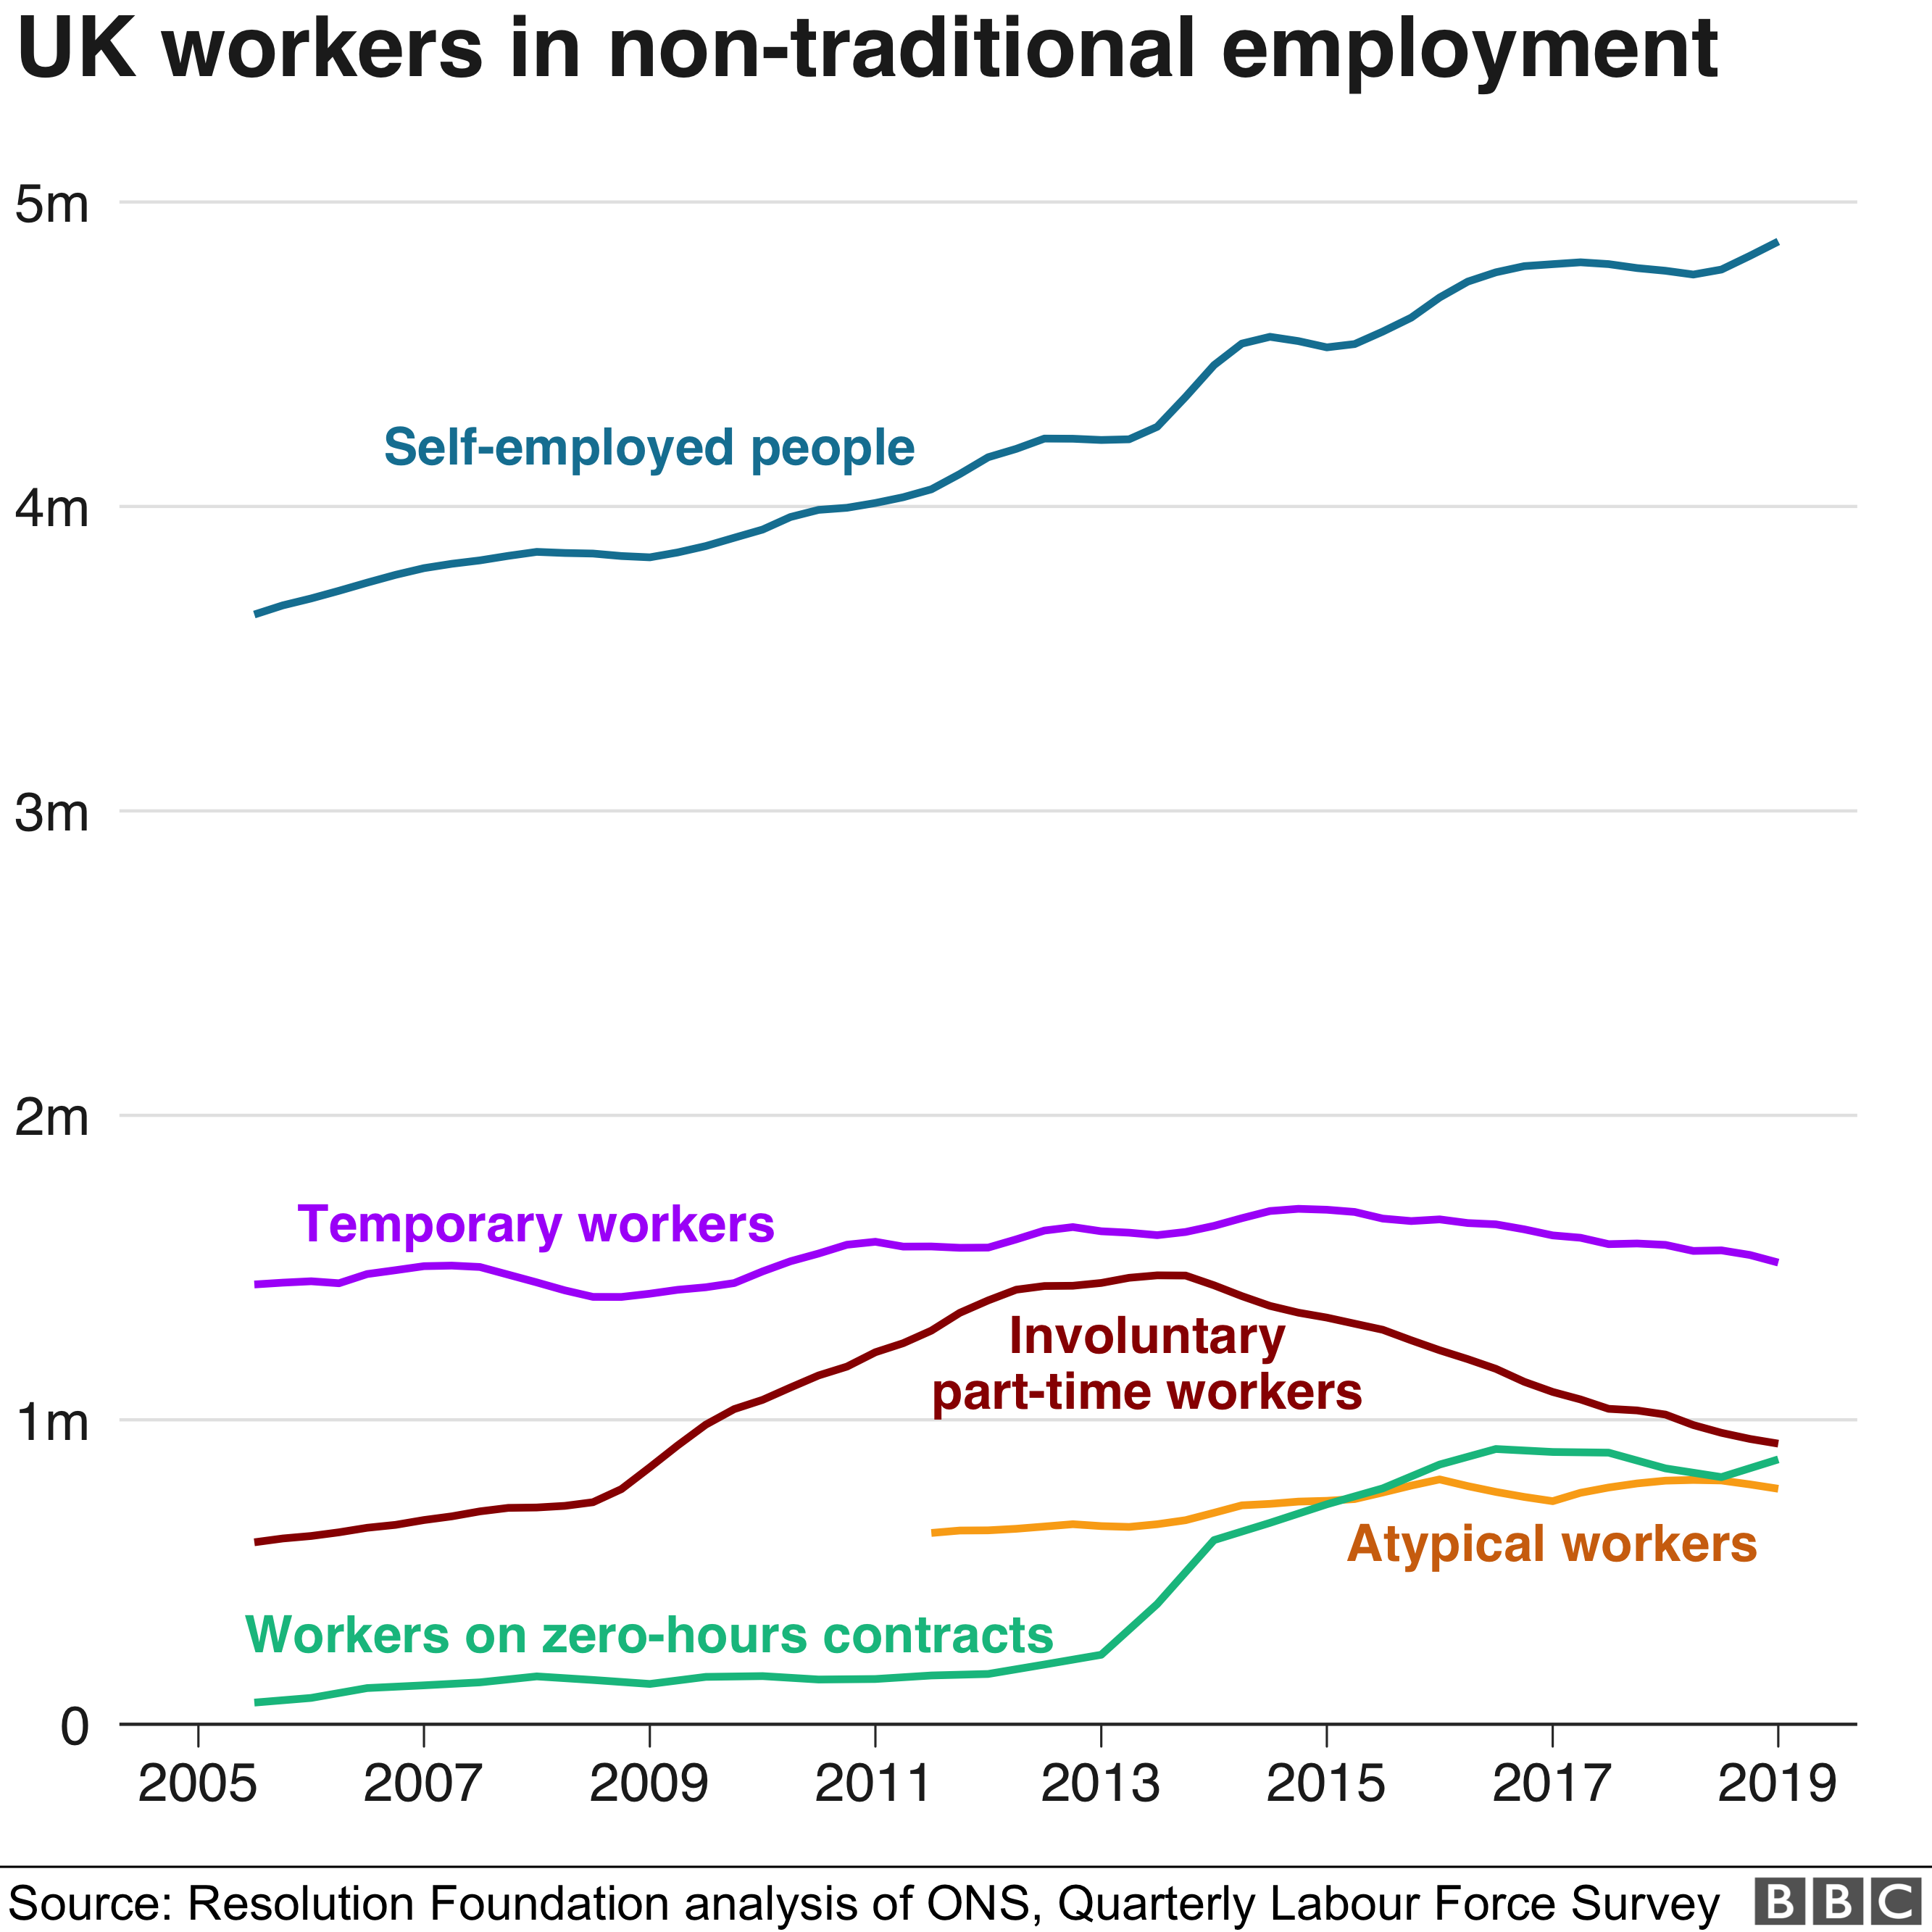 Workers in non-traditional employment